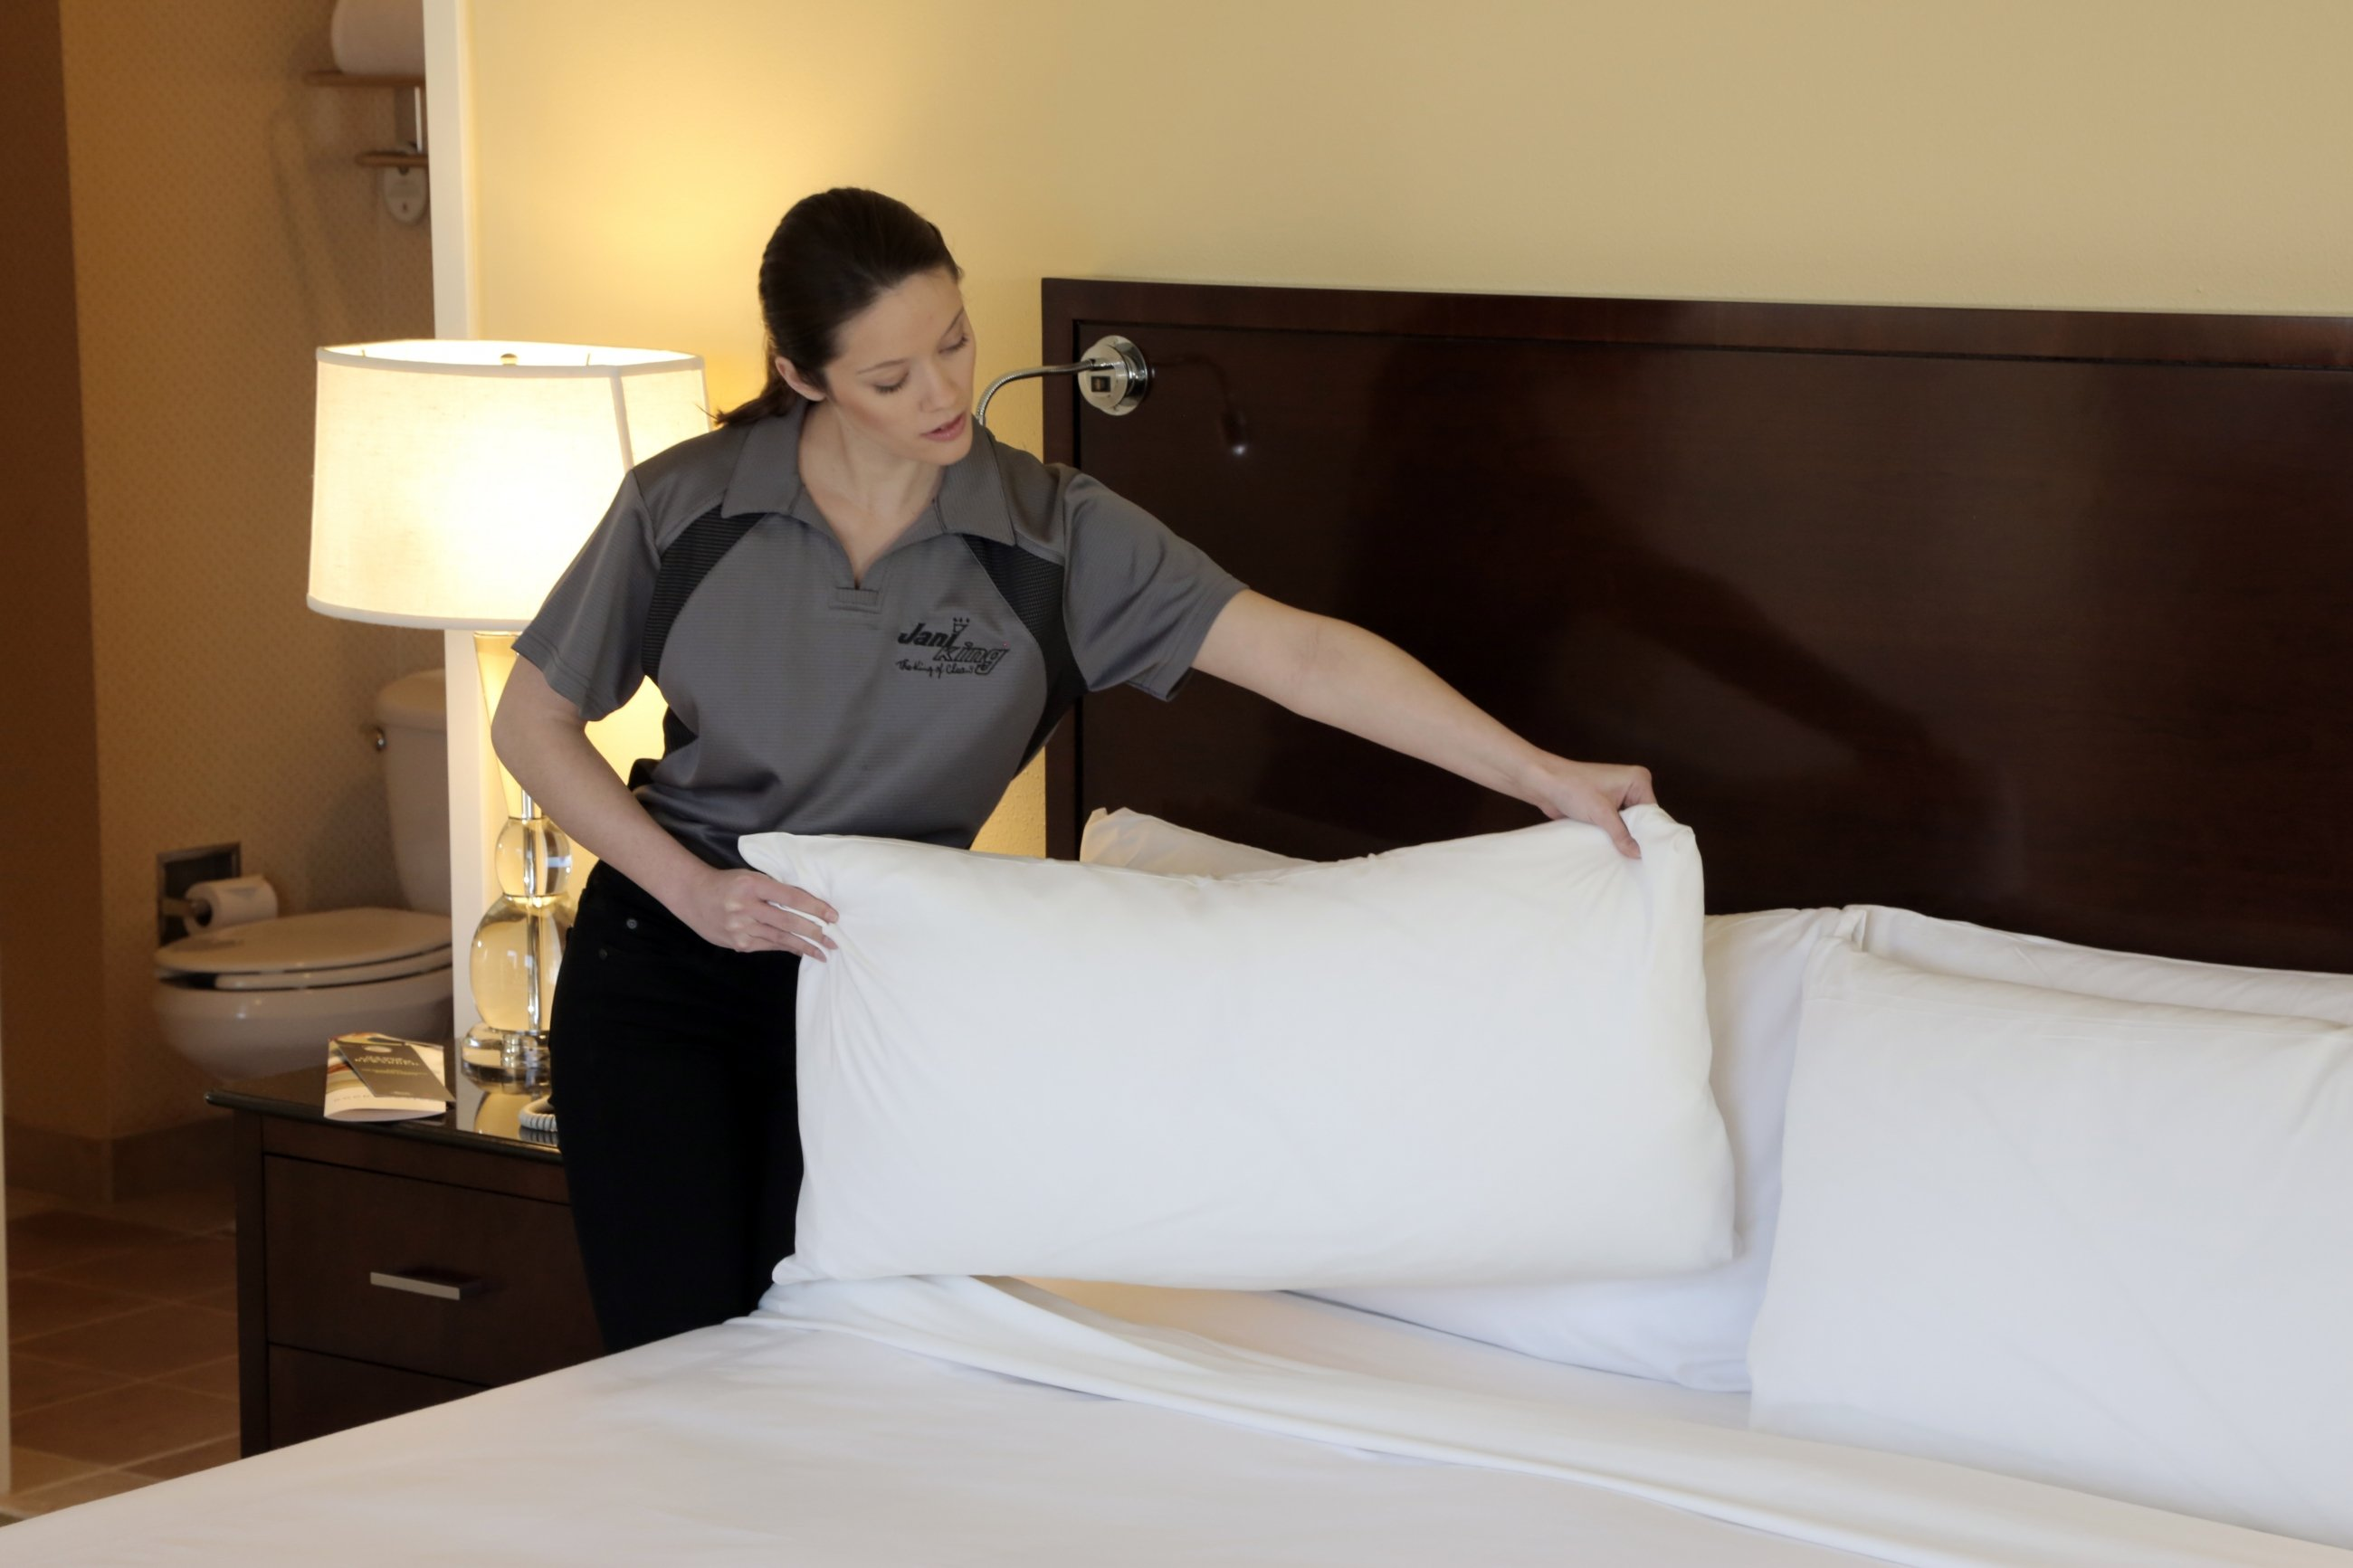 housekeeping hotel industry The hospitality industry has its fair share of brilliant minds and passionate employees, but it also grapples with an enormous level of employee turnover.